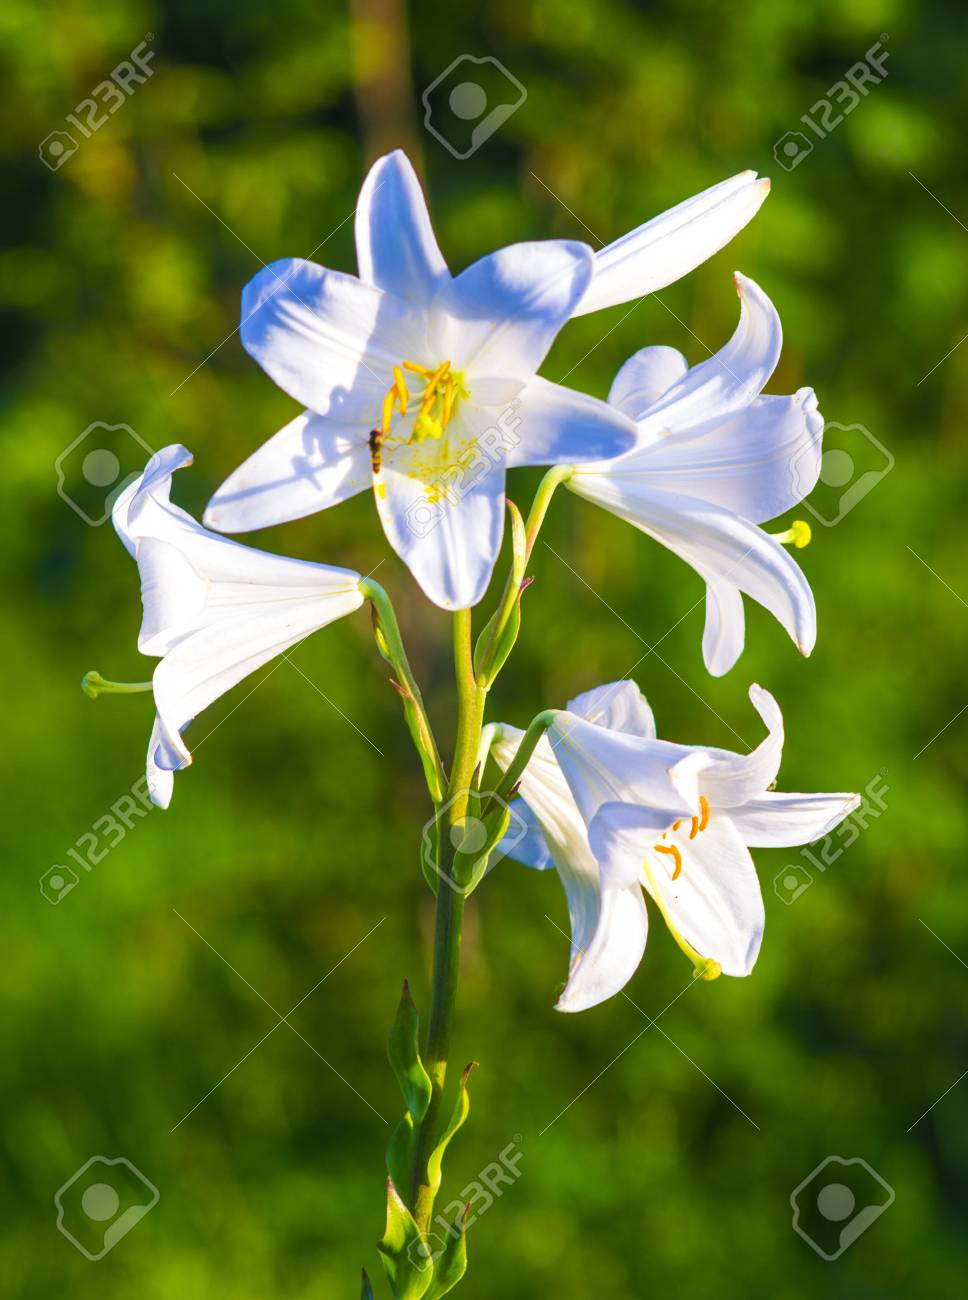 Lilies Madonna Lilyflowers Springlily On Whitewhite Flowers